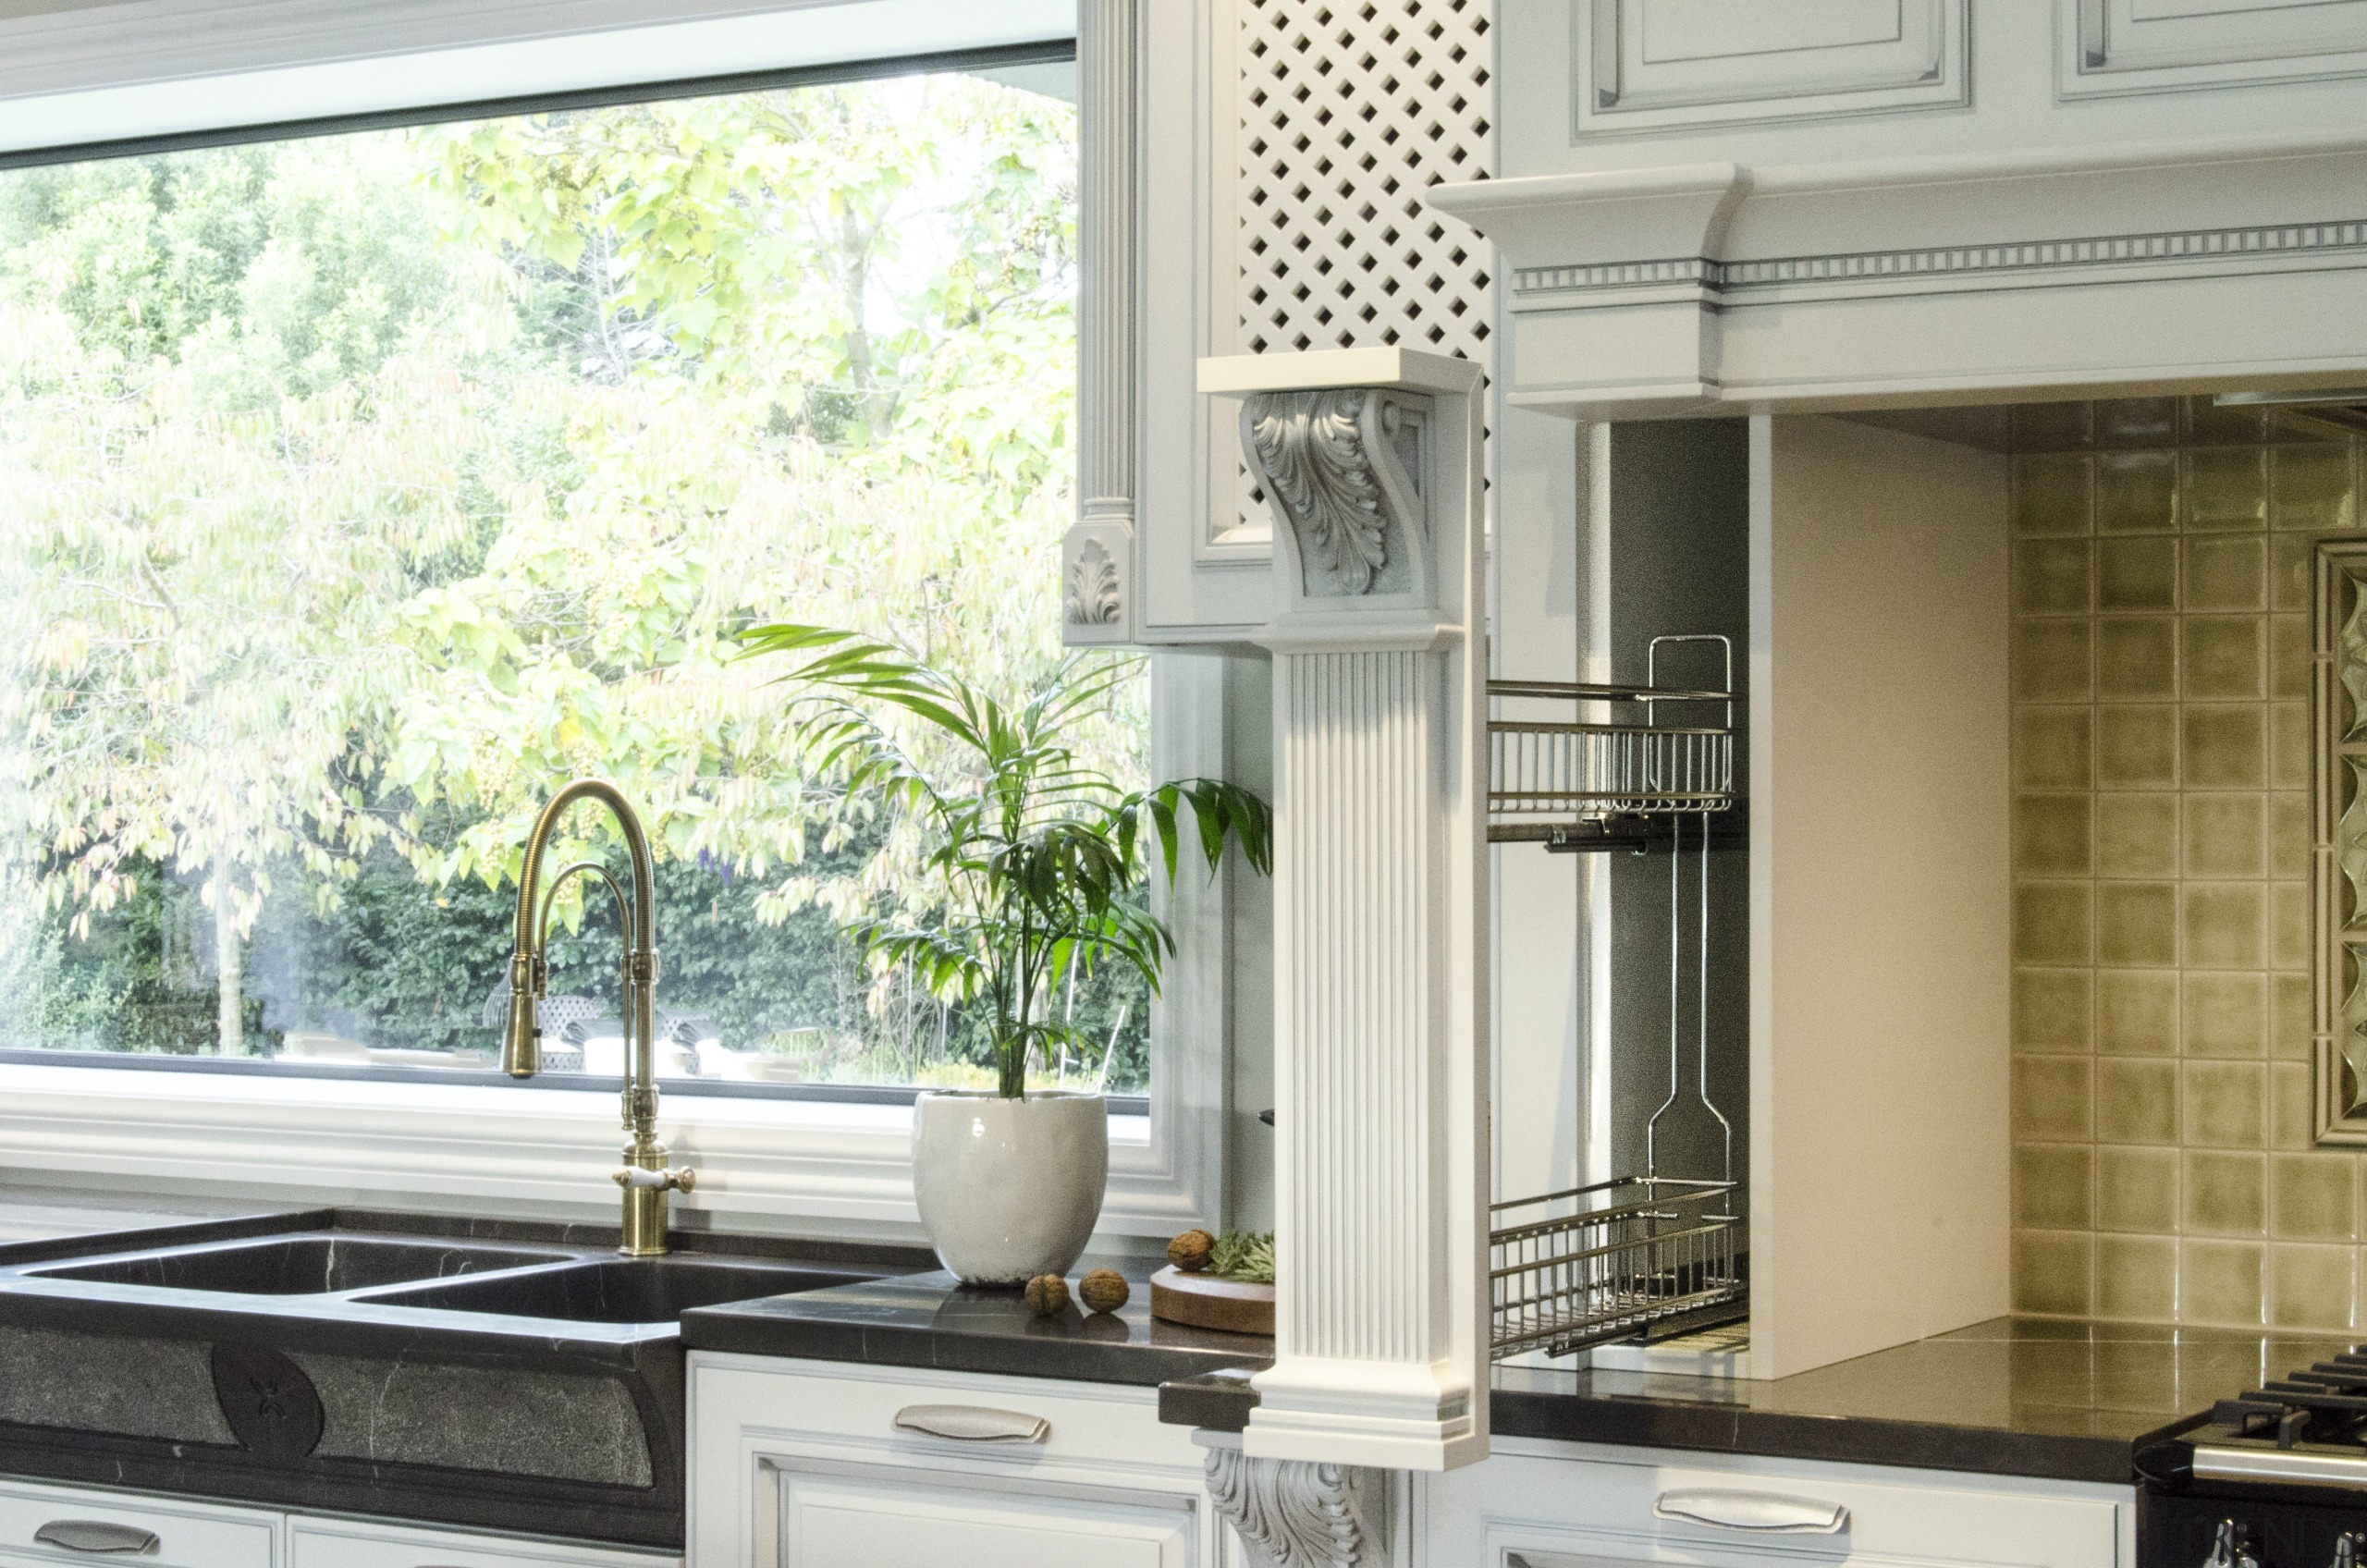 Goodland Residence 4 - Goodland Residence 4 - countertop, home, interior design, kitchen, property, window, window covering, white